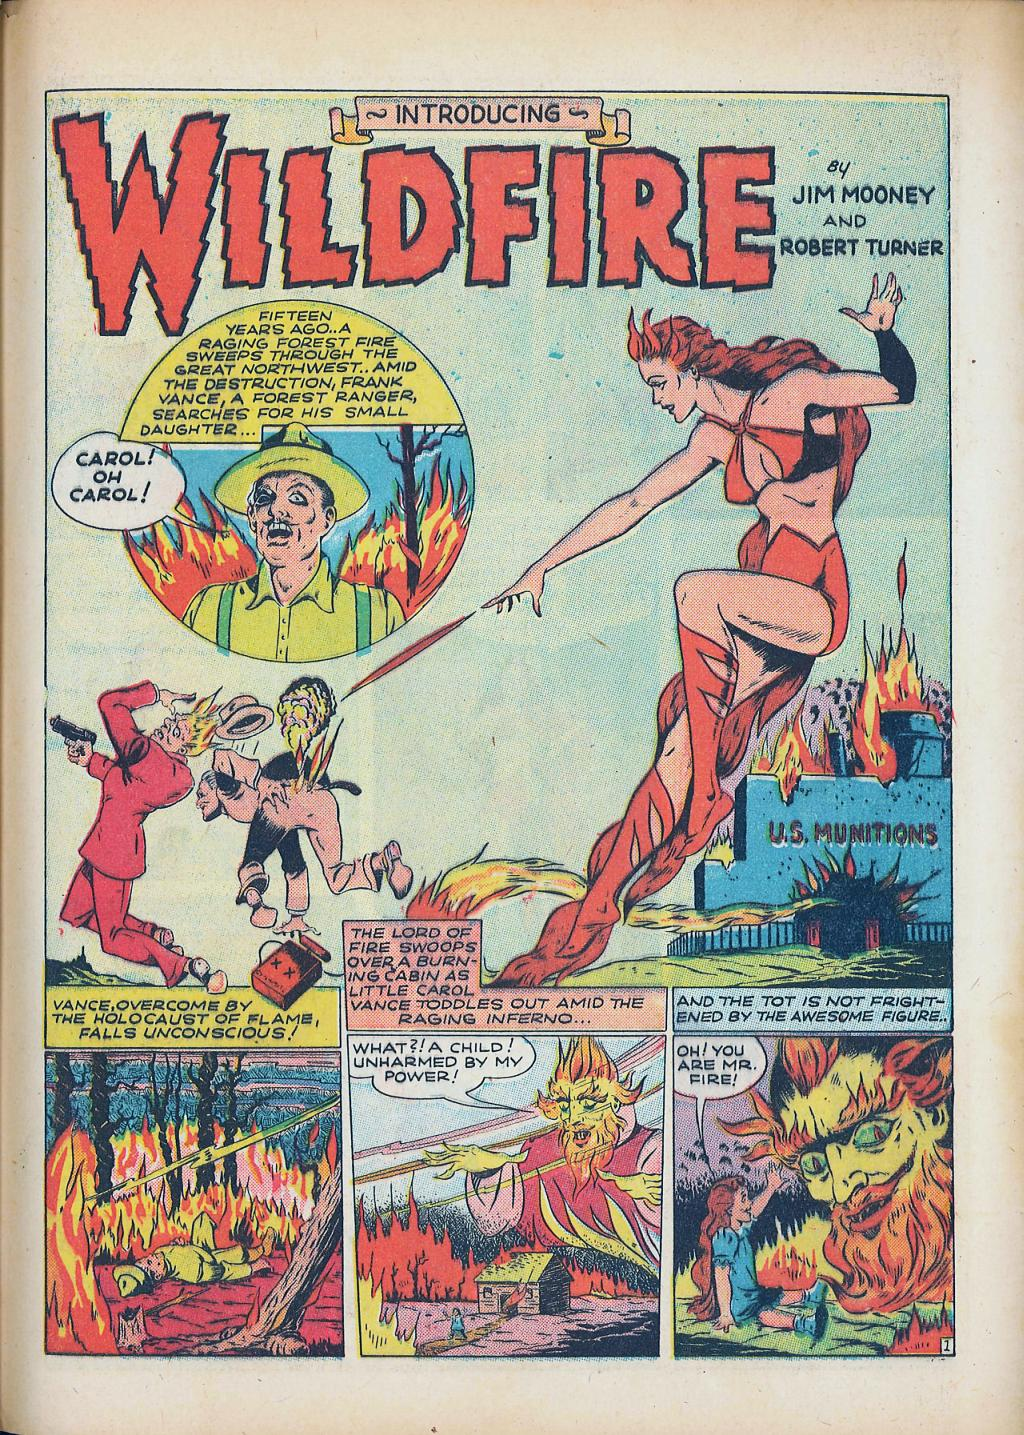 A page from Wildfire by Jim Mooney and Robert Turner.